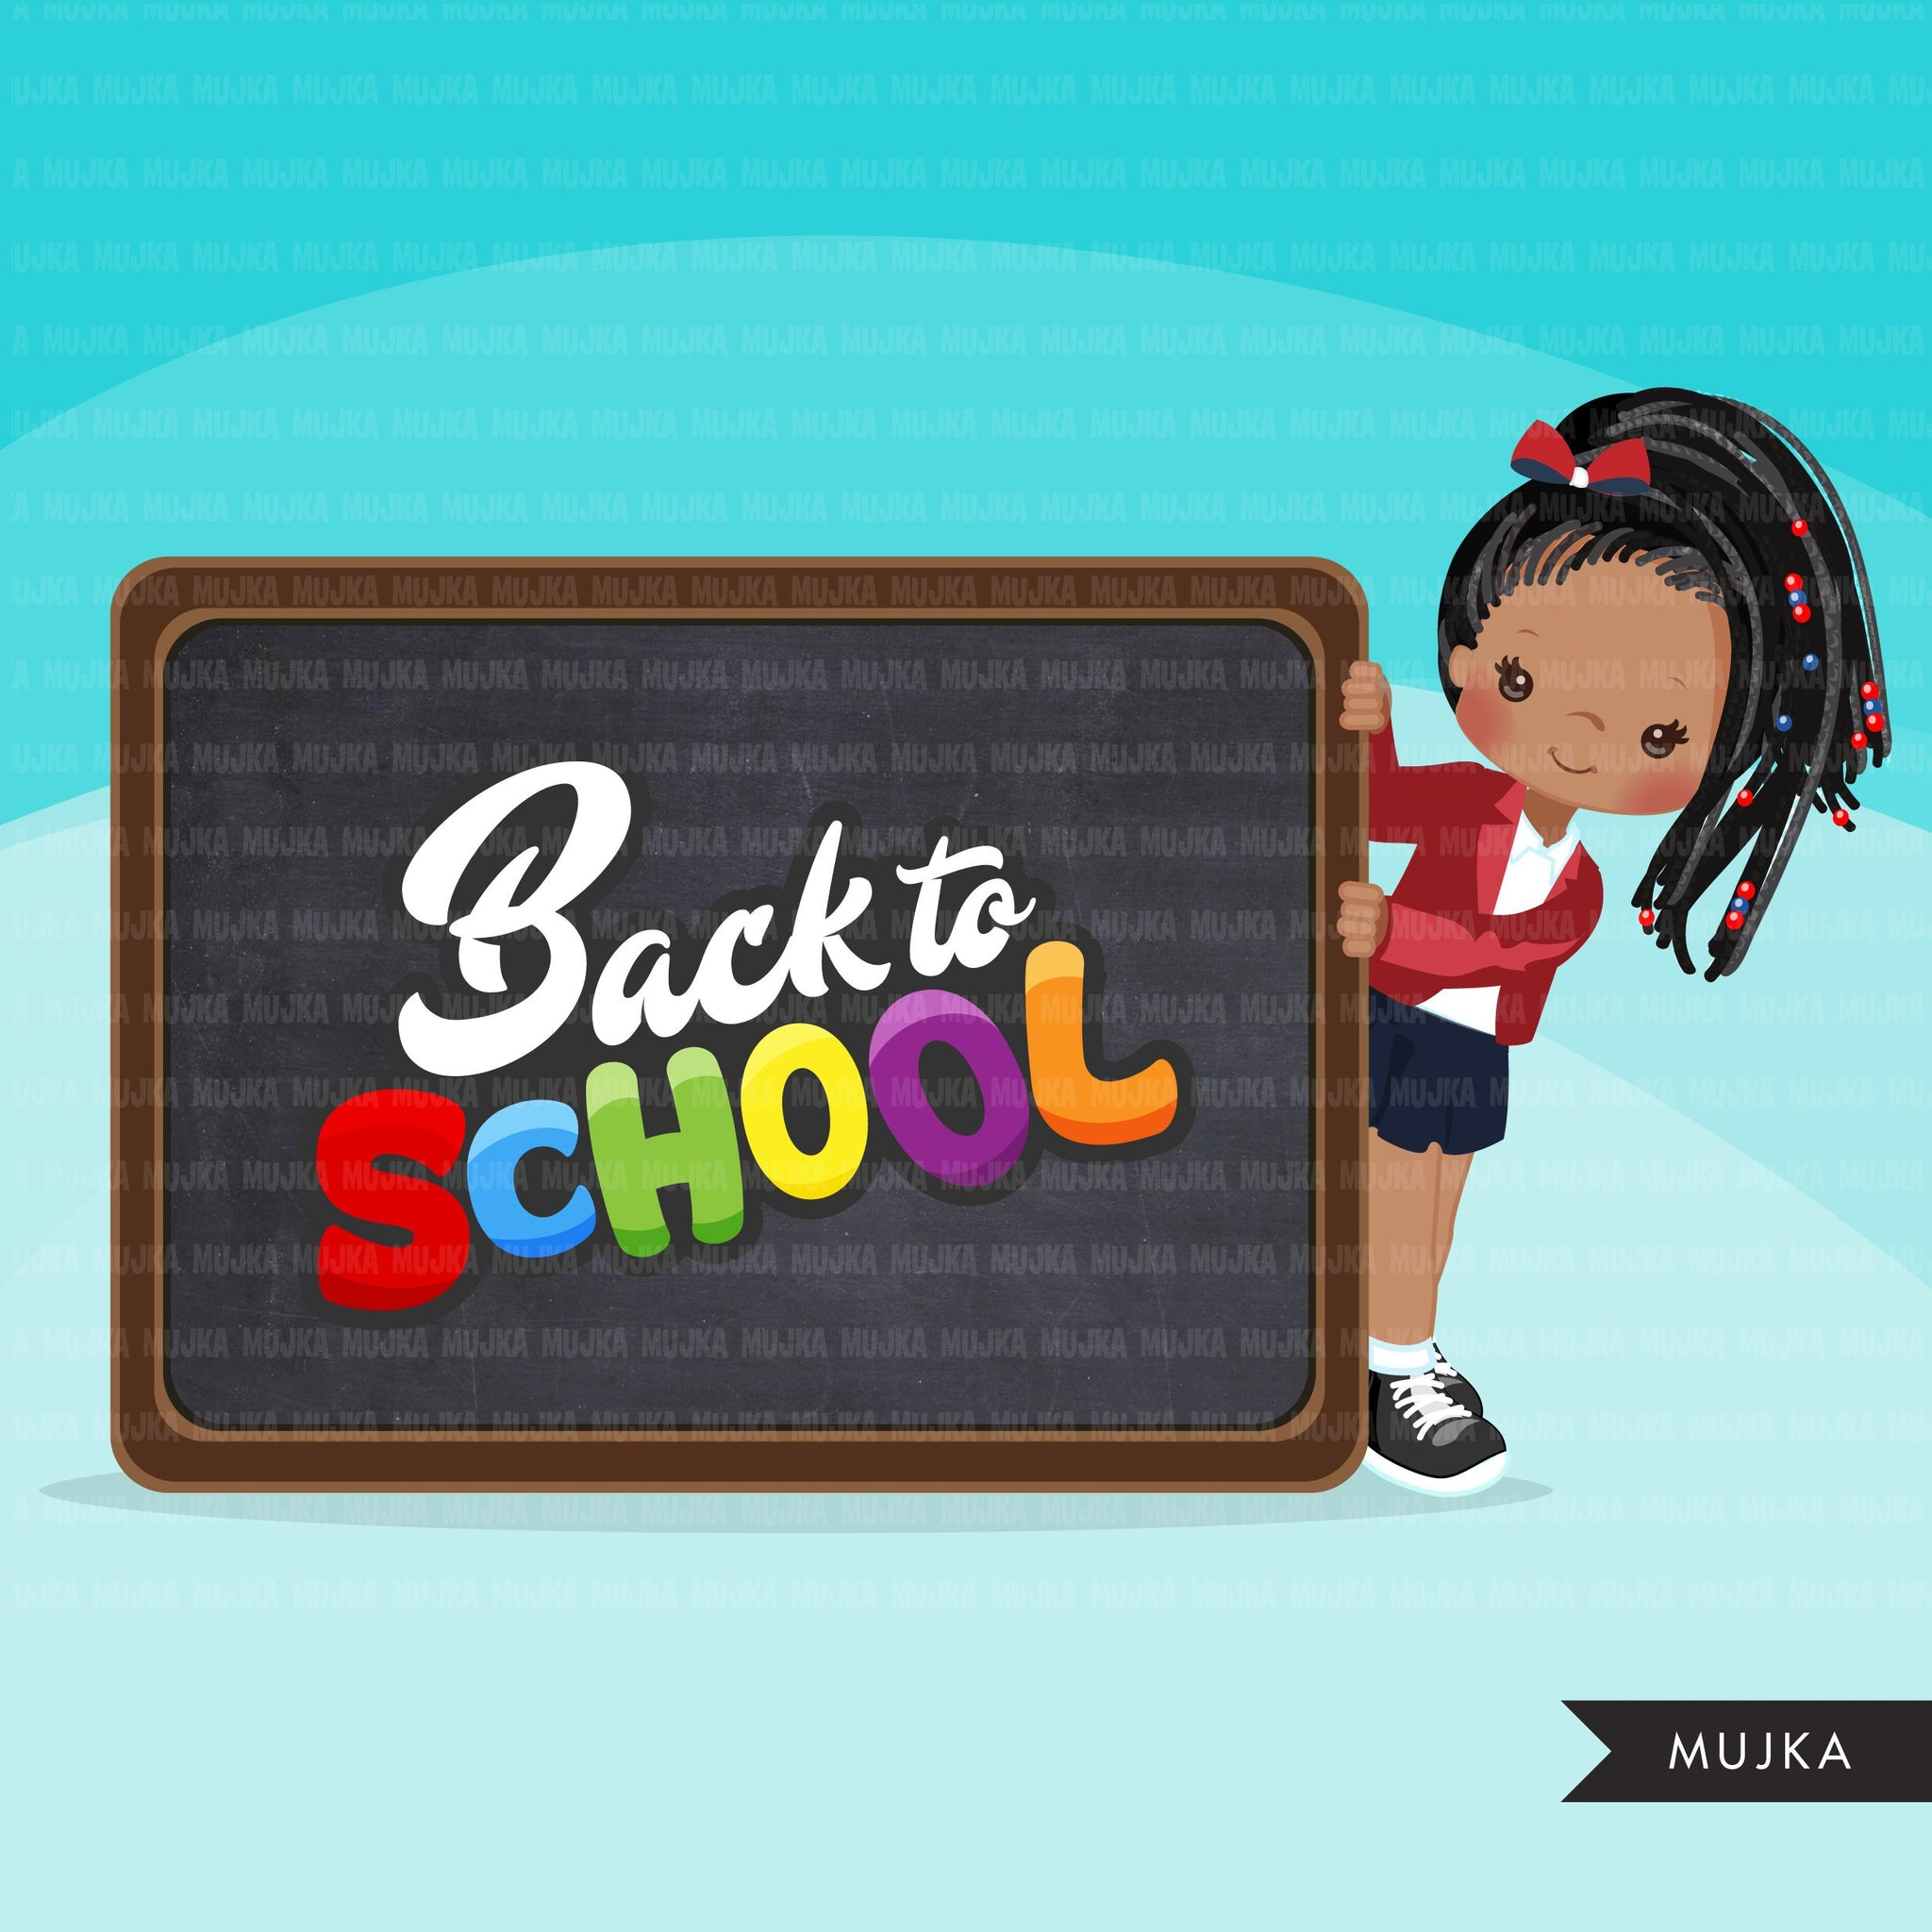 Back to school clipart with black Girl students black board, Education, teaching graphics